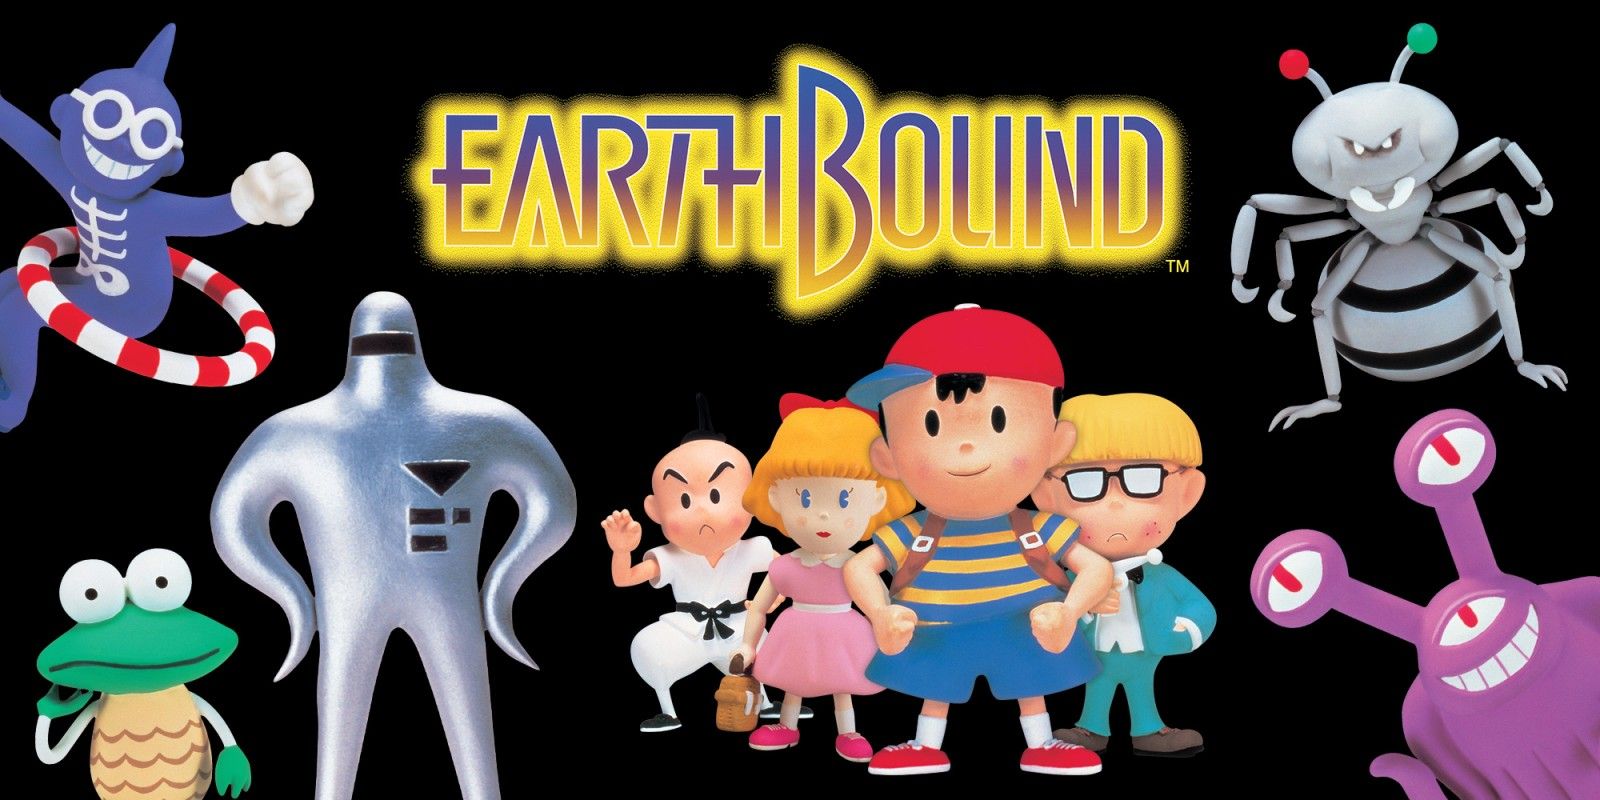 H2x1_SNES_EarthBound_image1600w.jpg